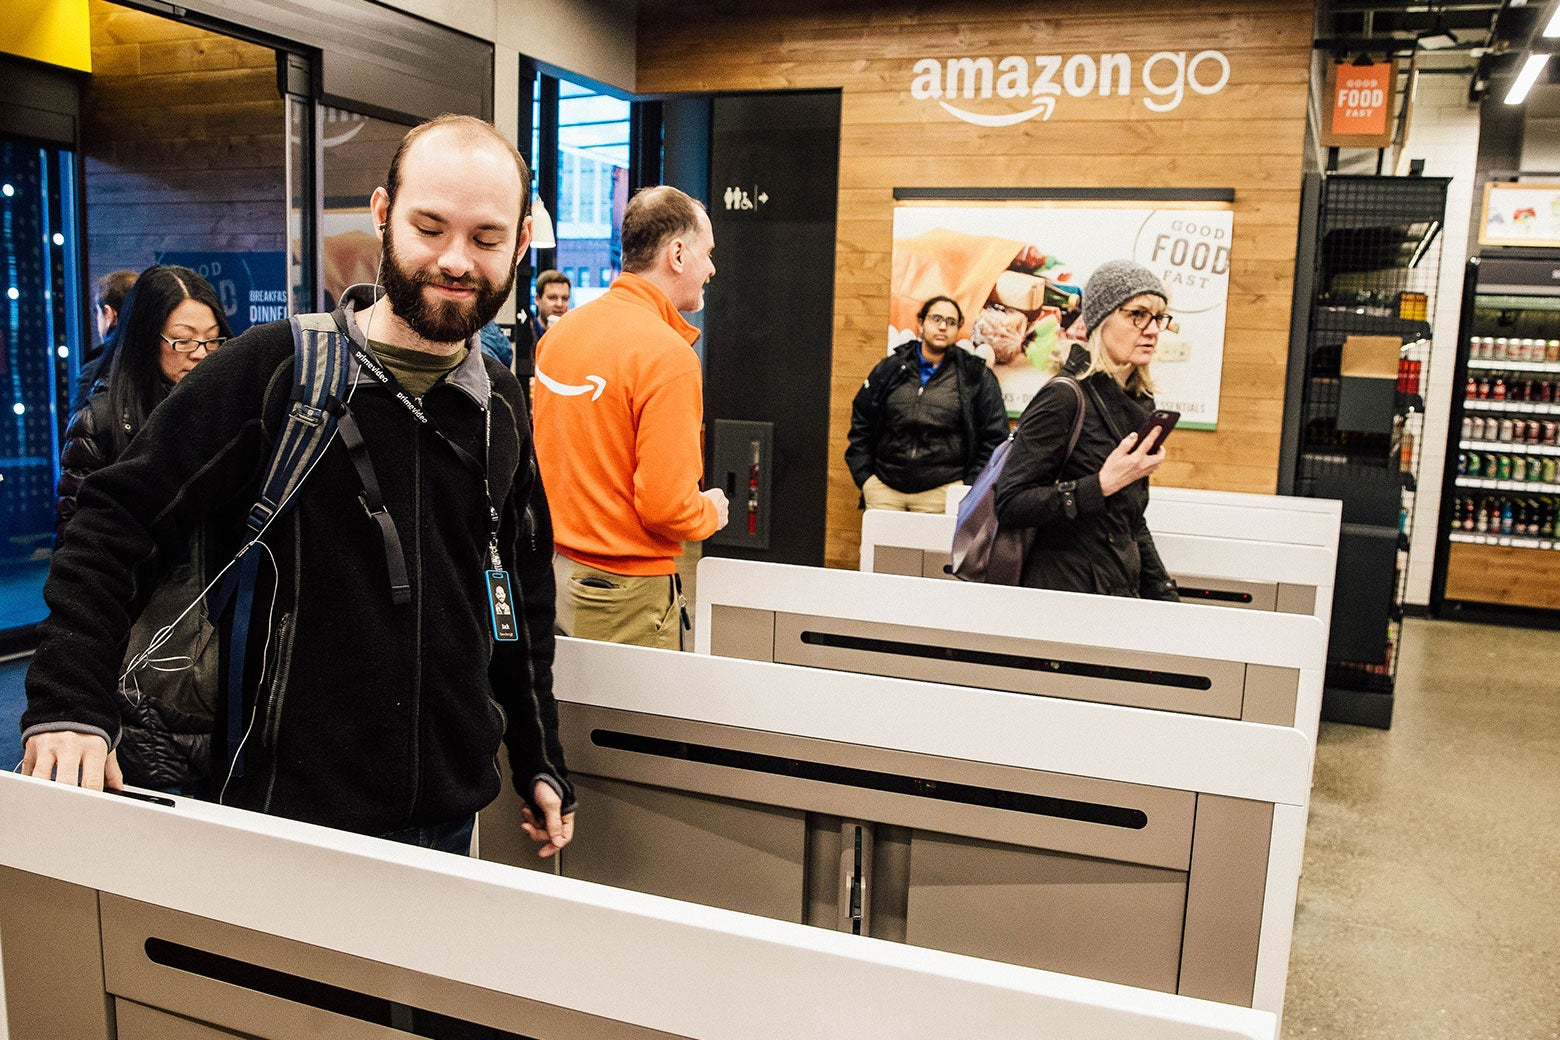 Shoppers scan the Amazon Go app on their mobile devices as they enter the Amazon Go store on Jan. 22 in Seattle.